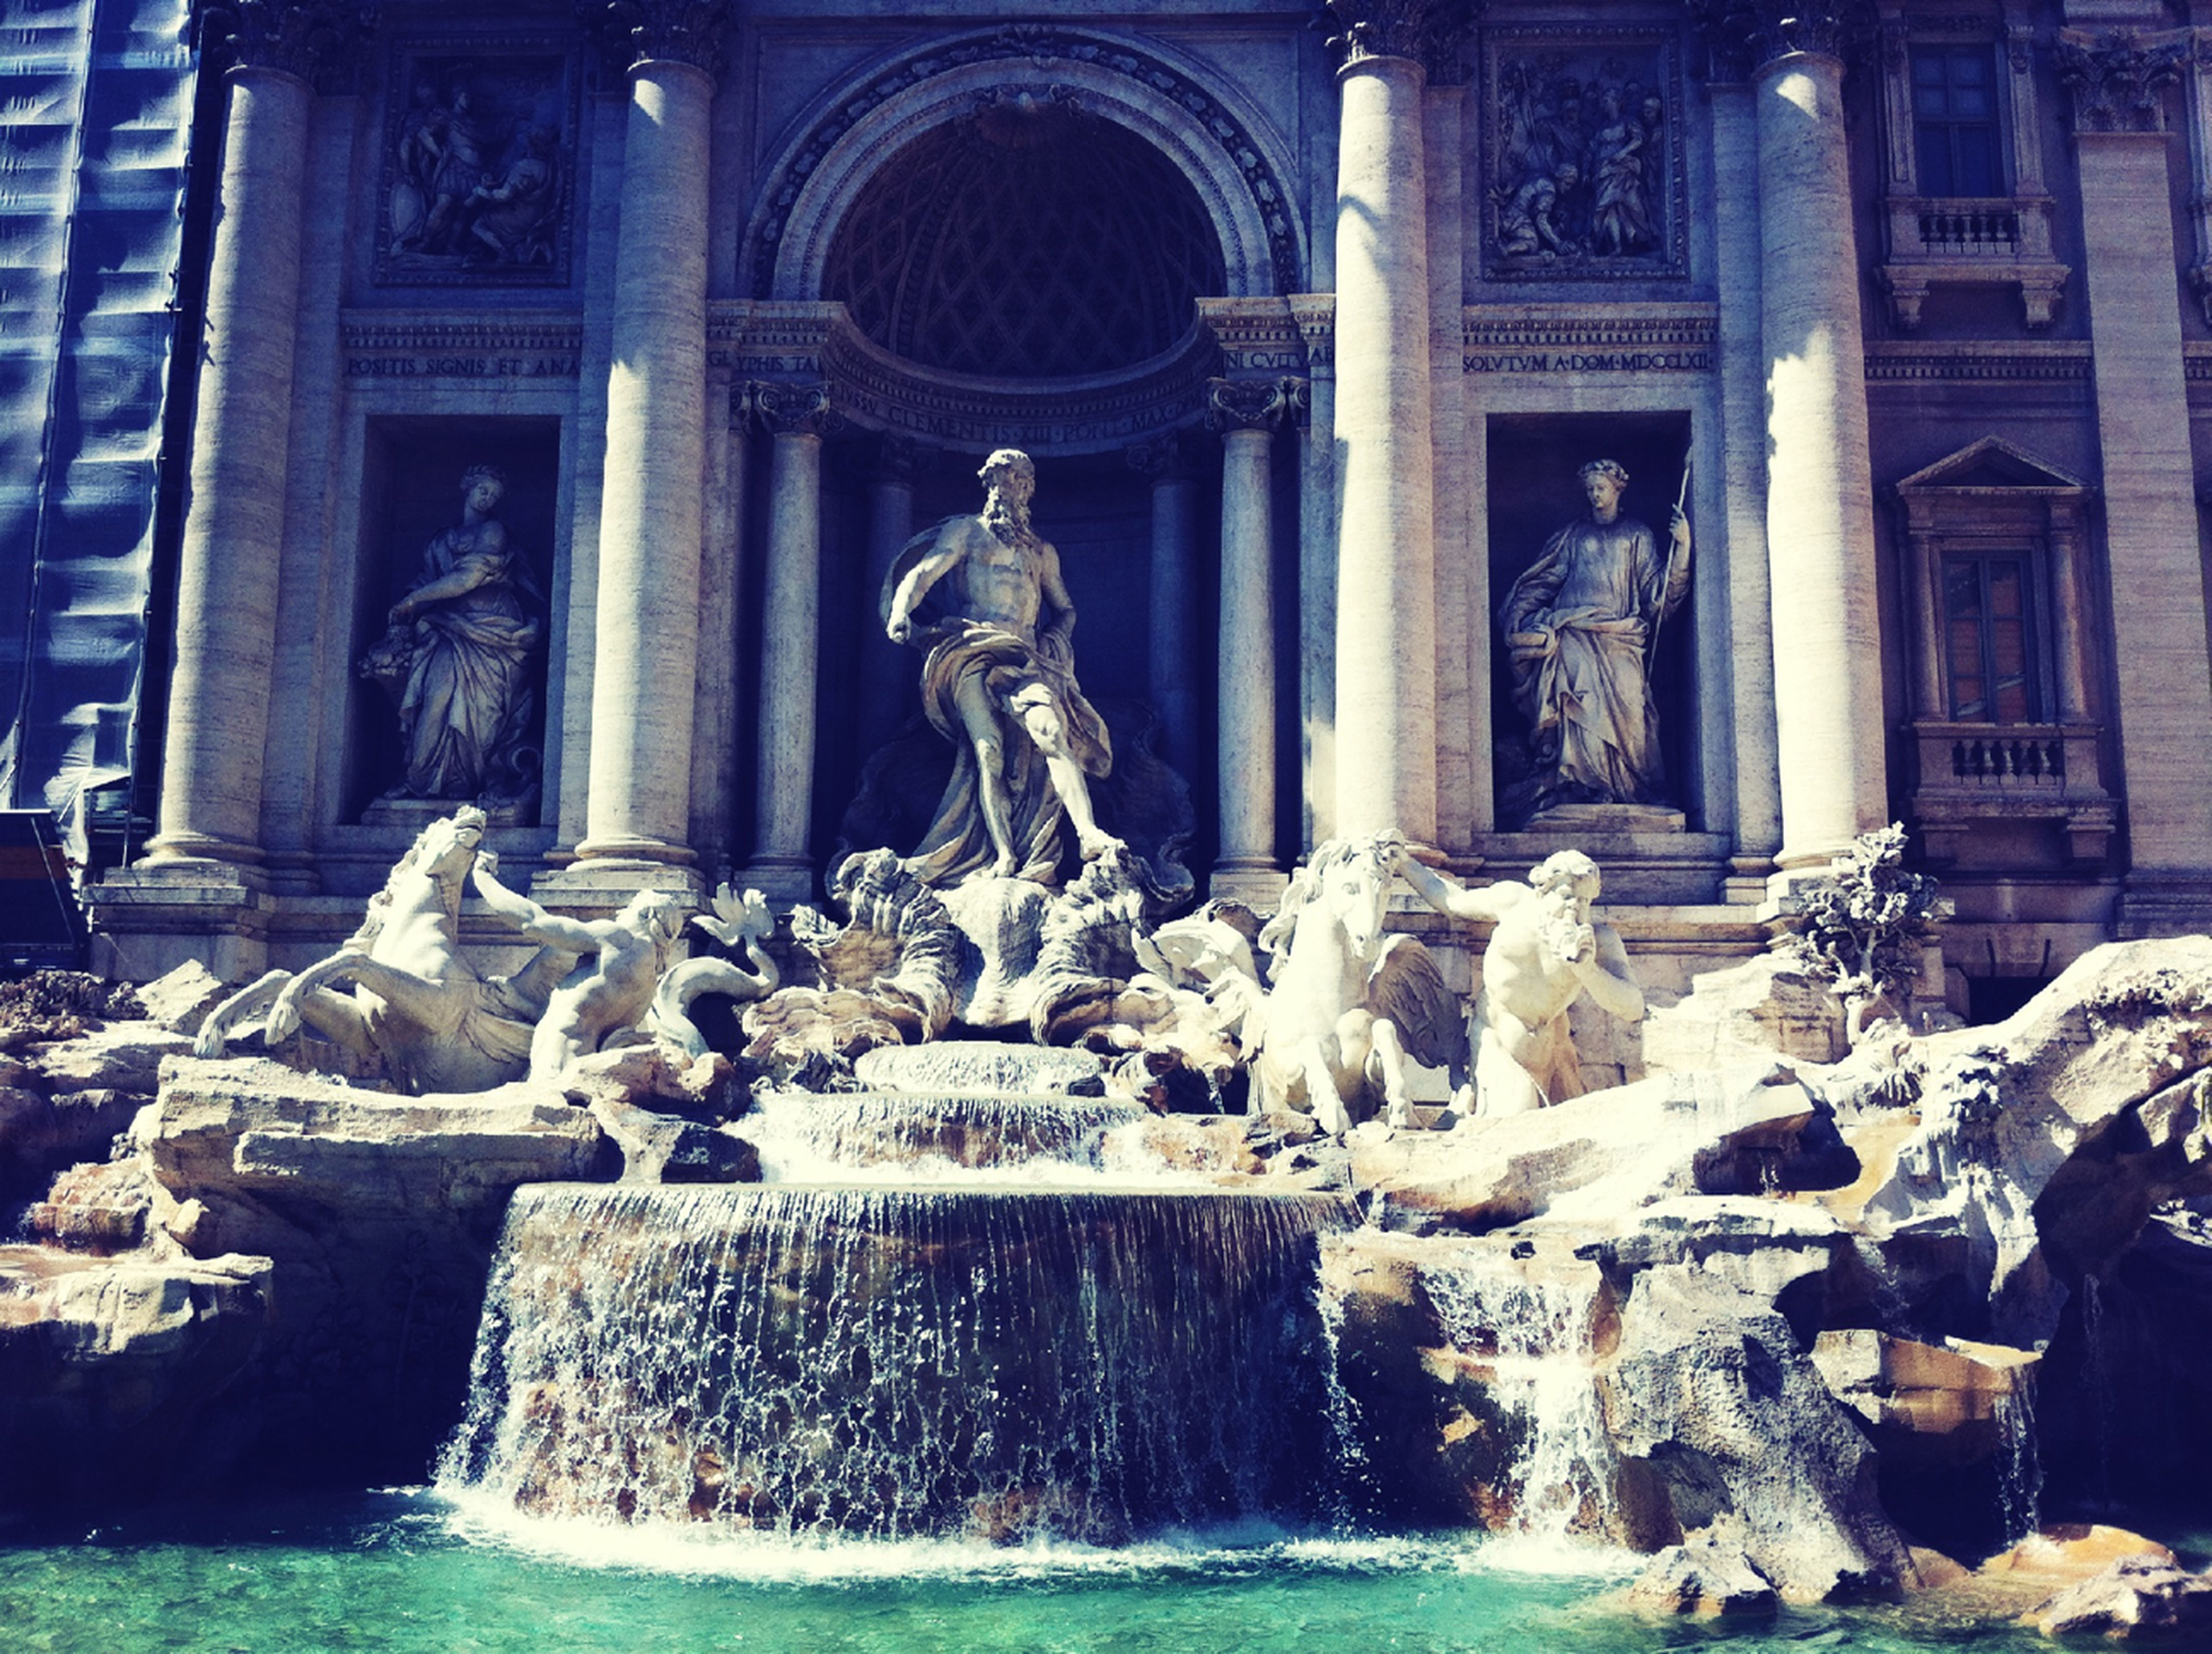 architecture, water, built structure, statue, building exterior, fountain, sculpture, art and craft, human representation, art, architectural column, famous place, creativity, history, travel destinations, religion, splashing, spirituality, waterfront